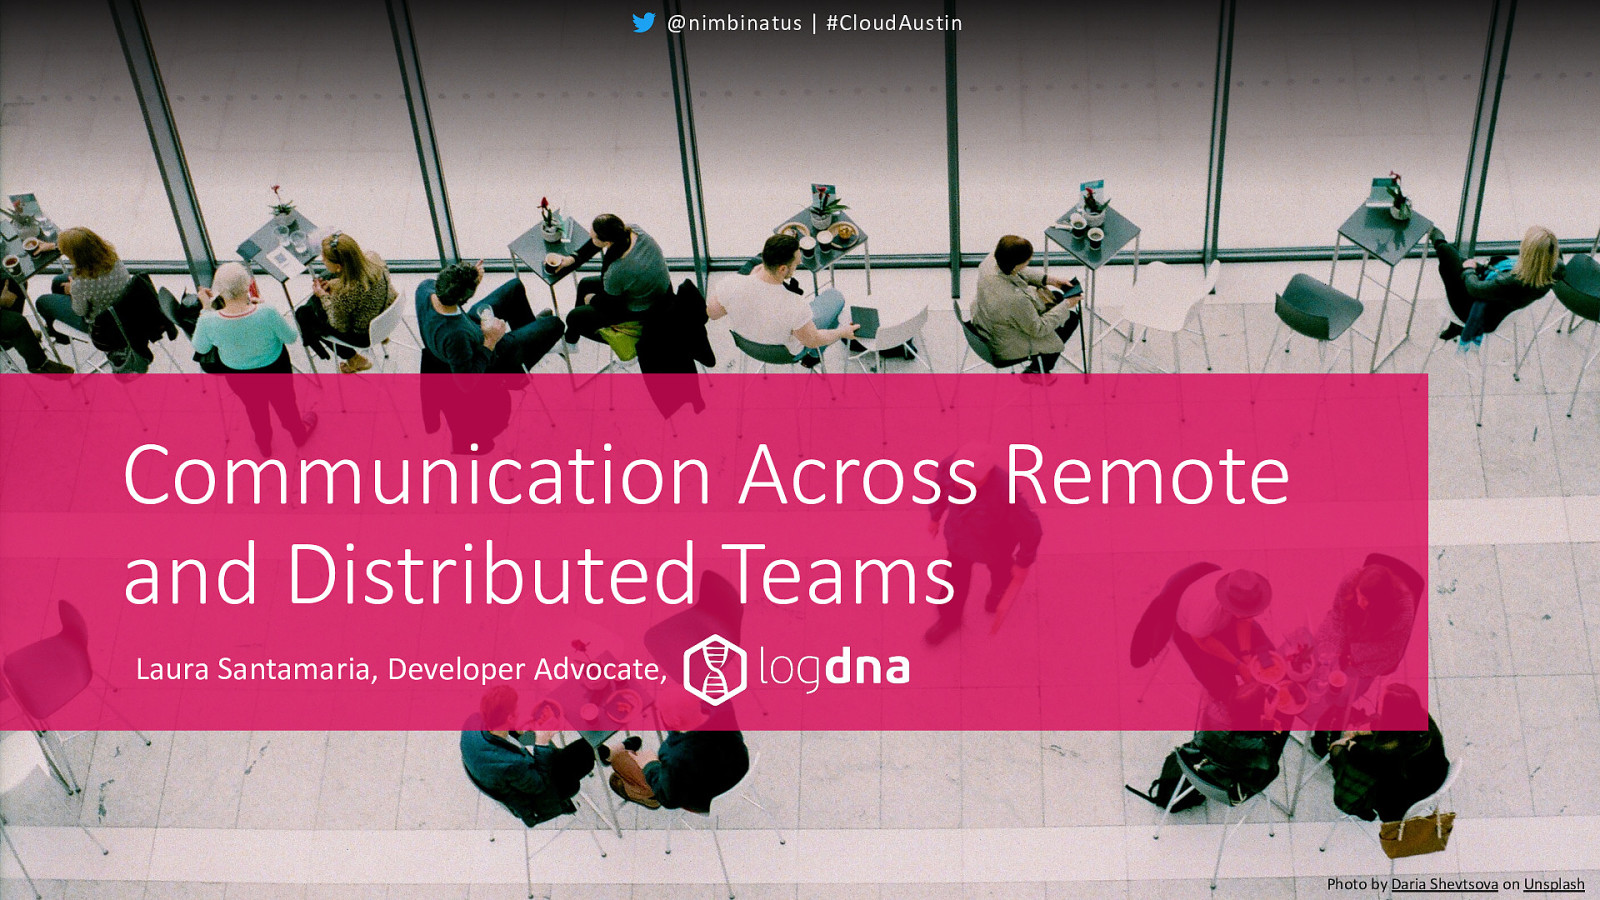 Communication across Remote and Distributed Teams